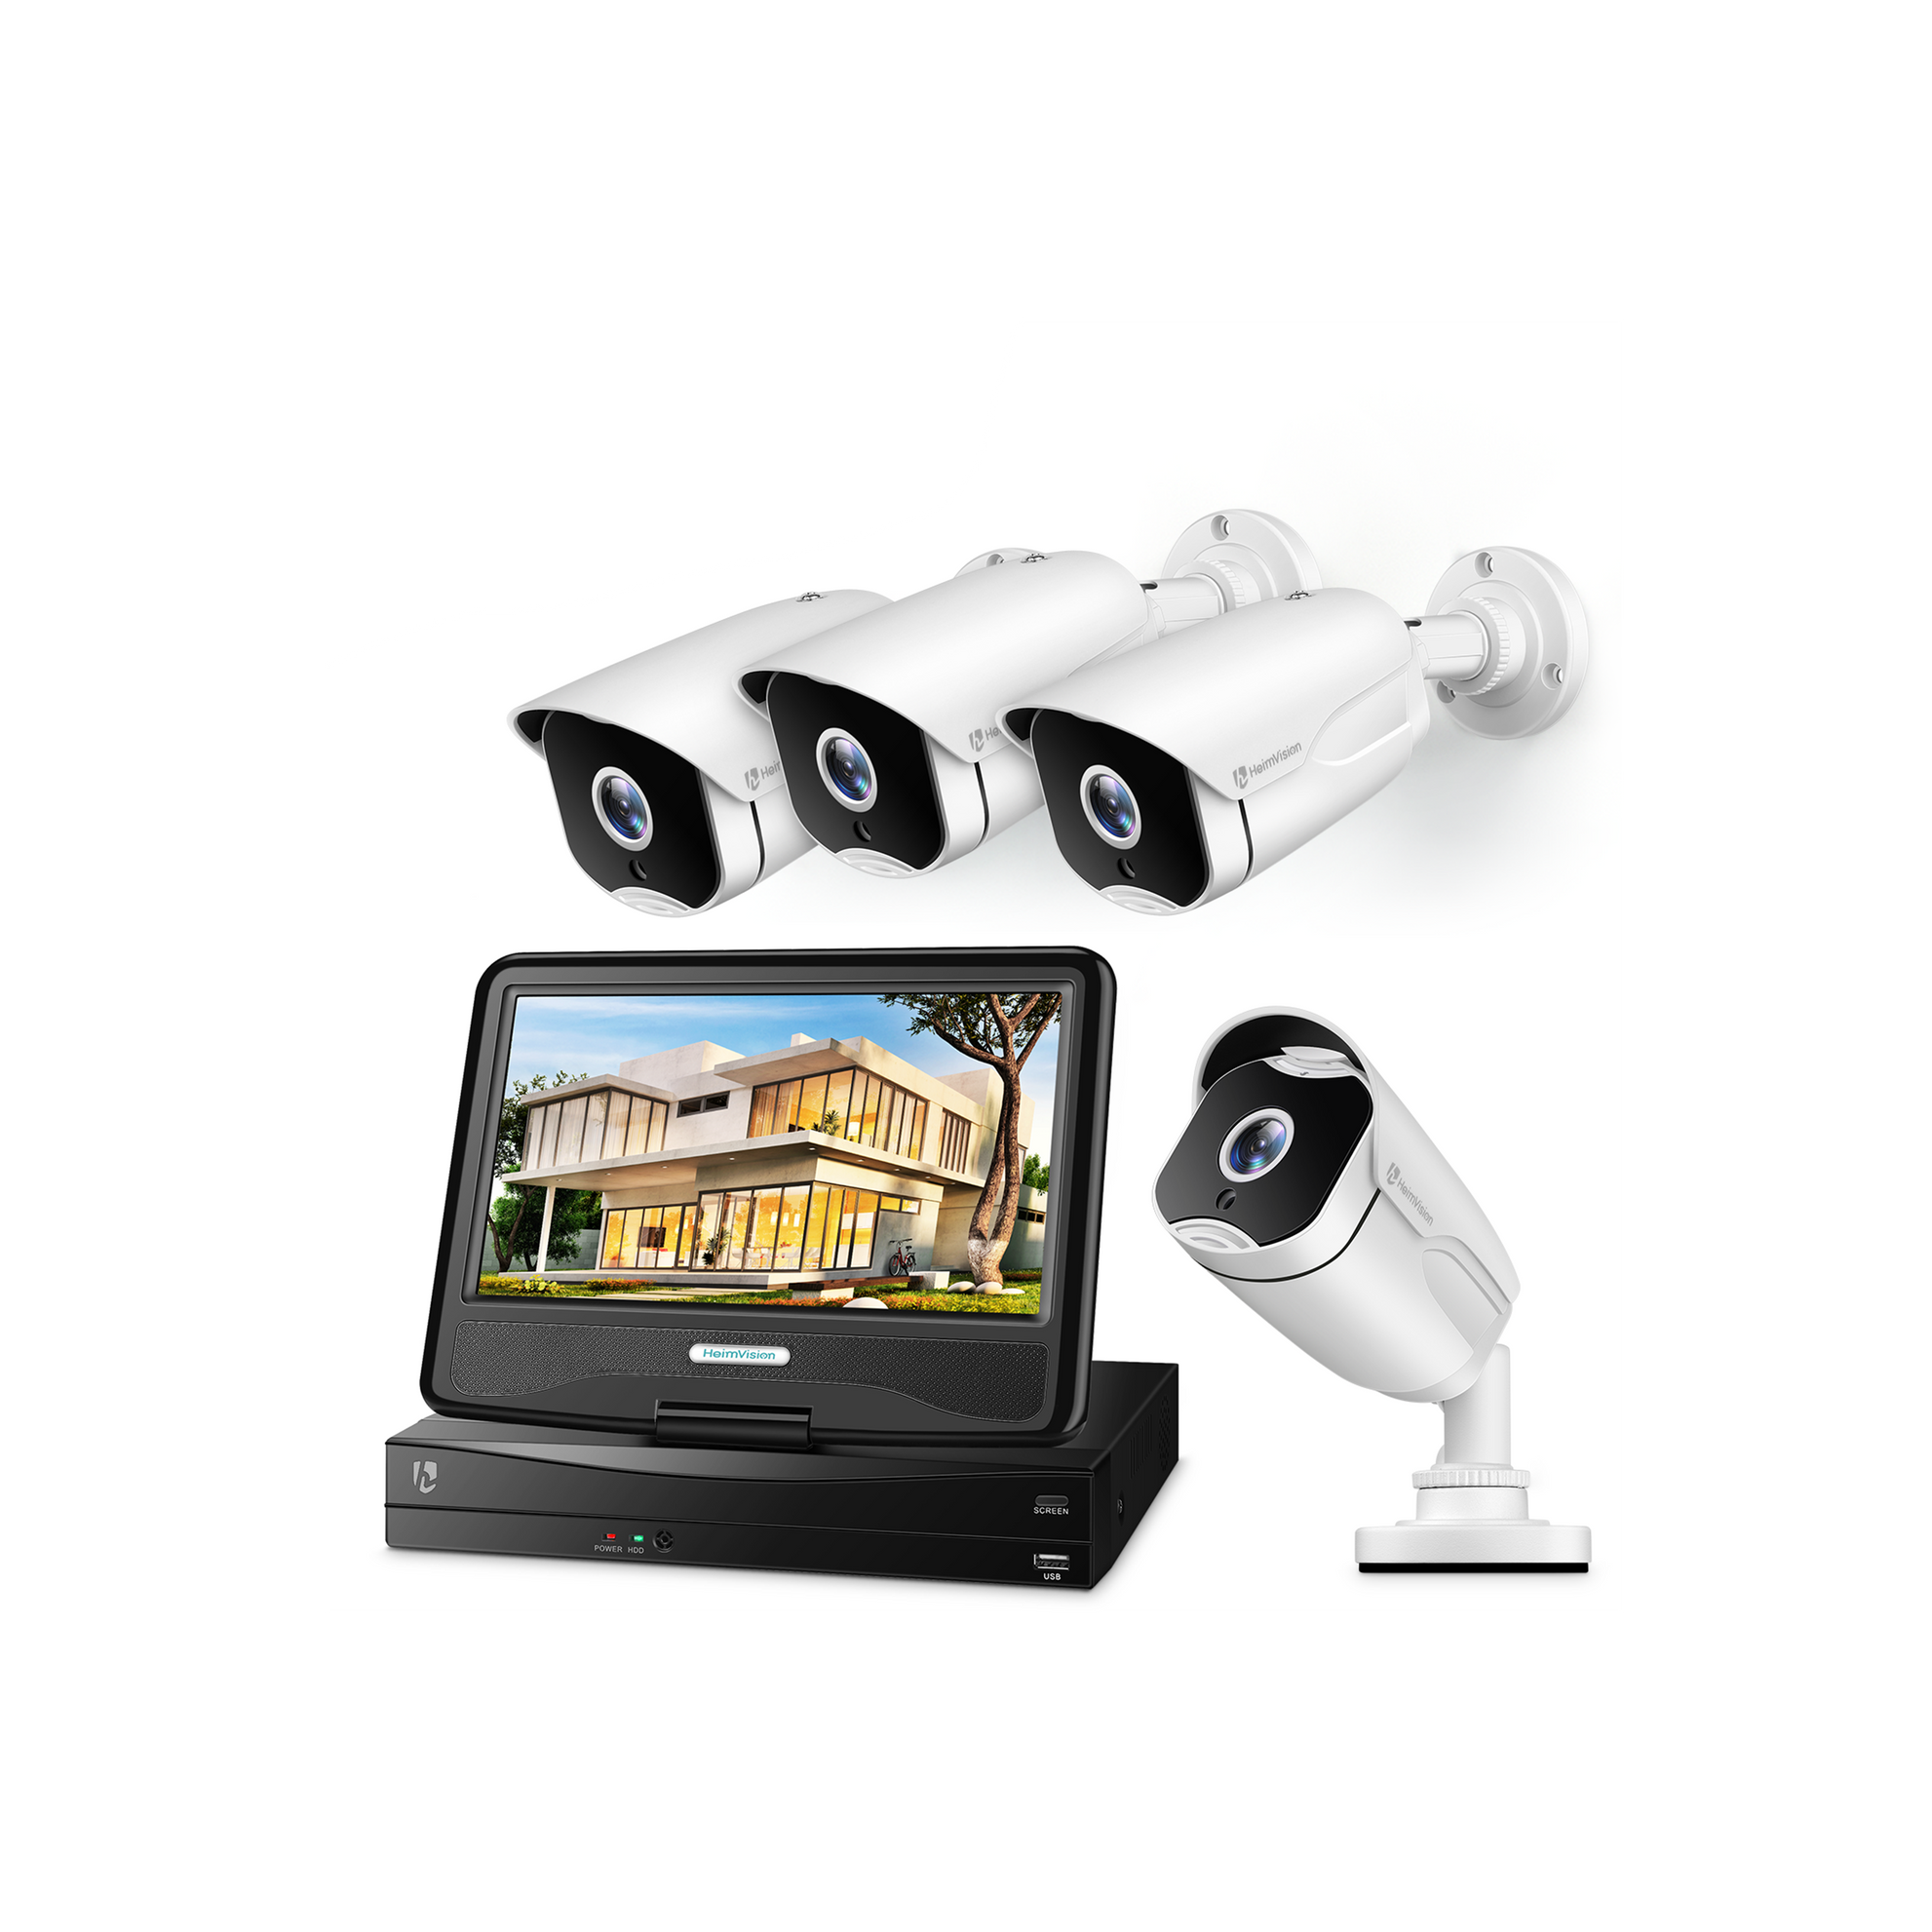 HeimVision HM541 5MP POE Security Camera System